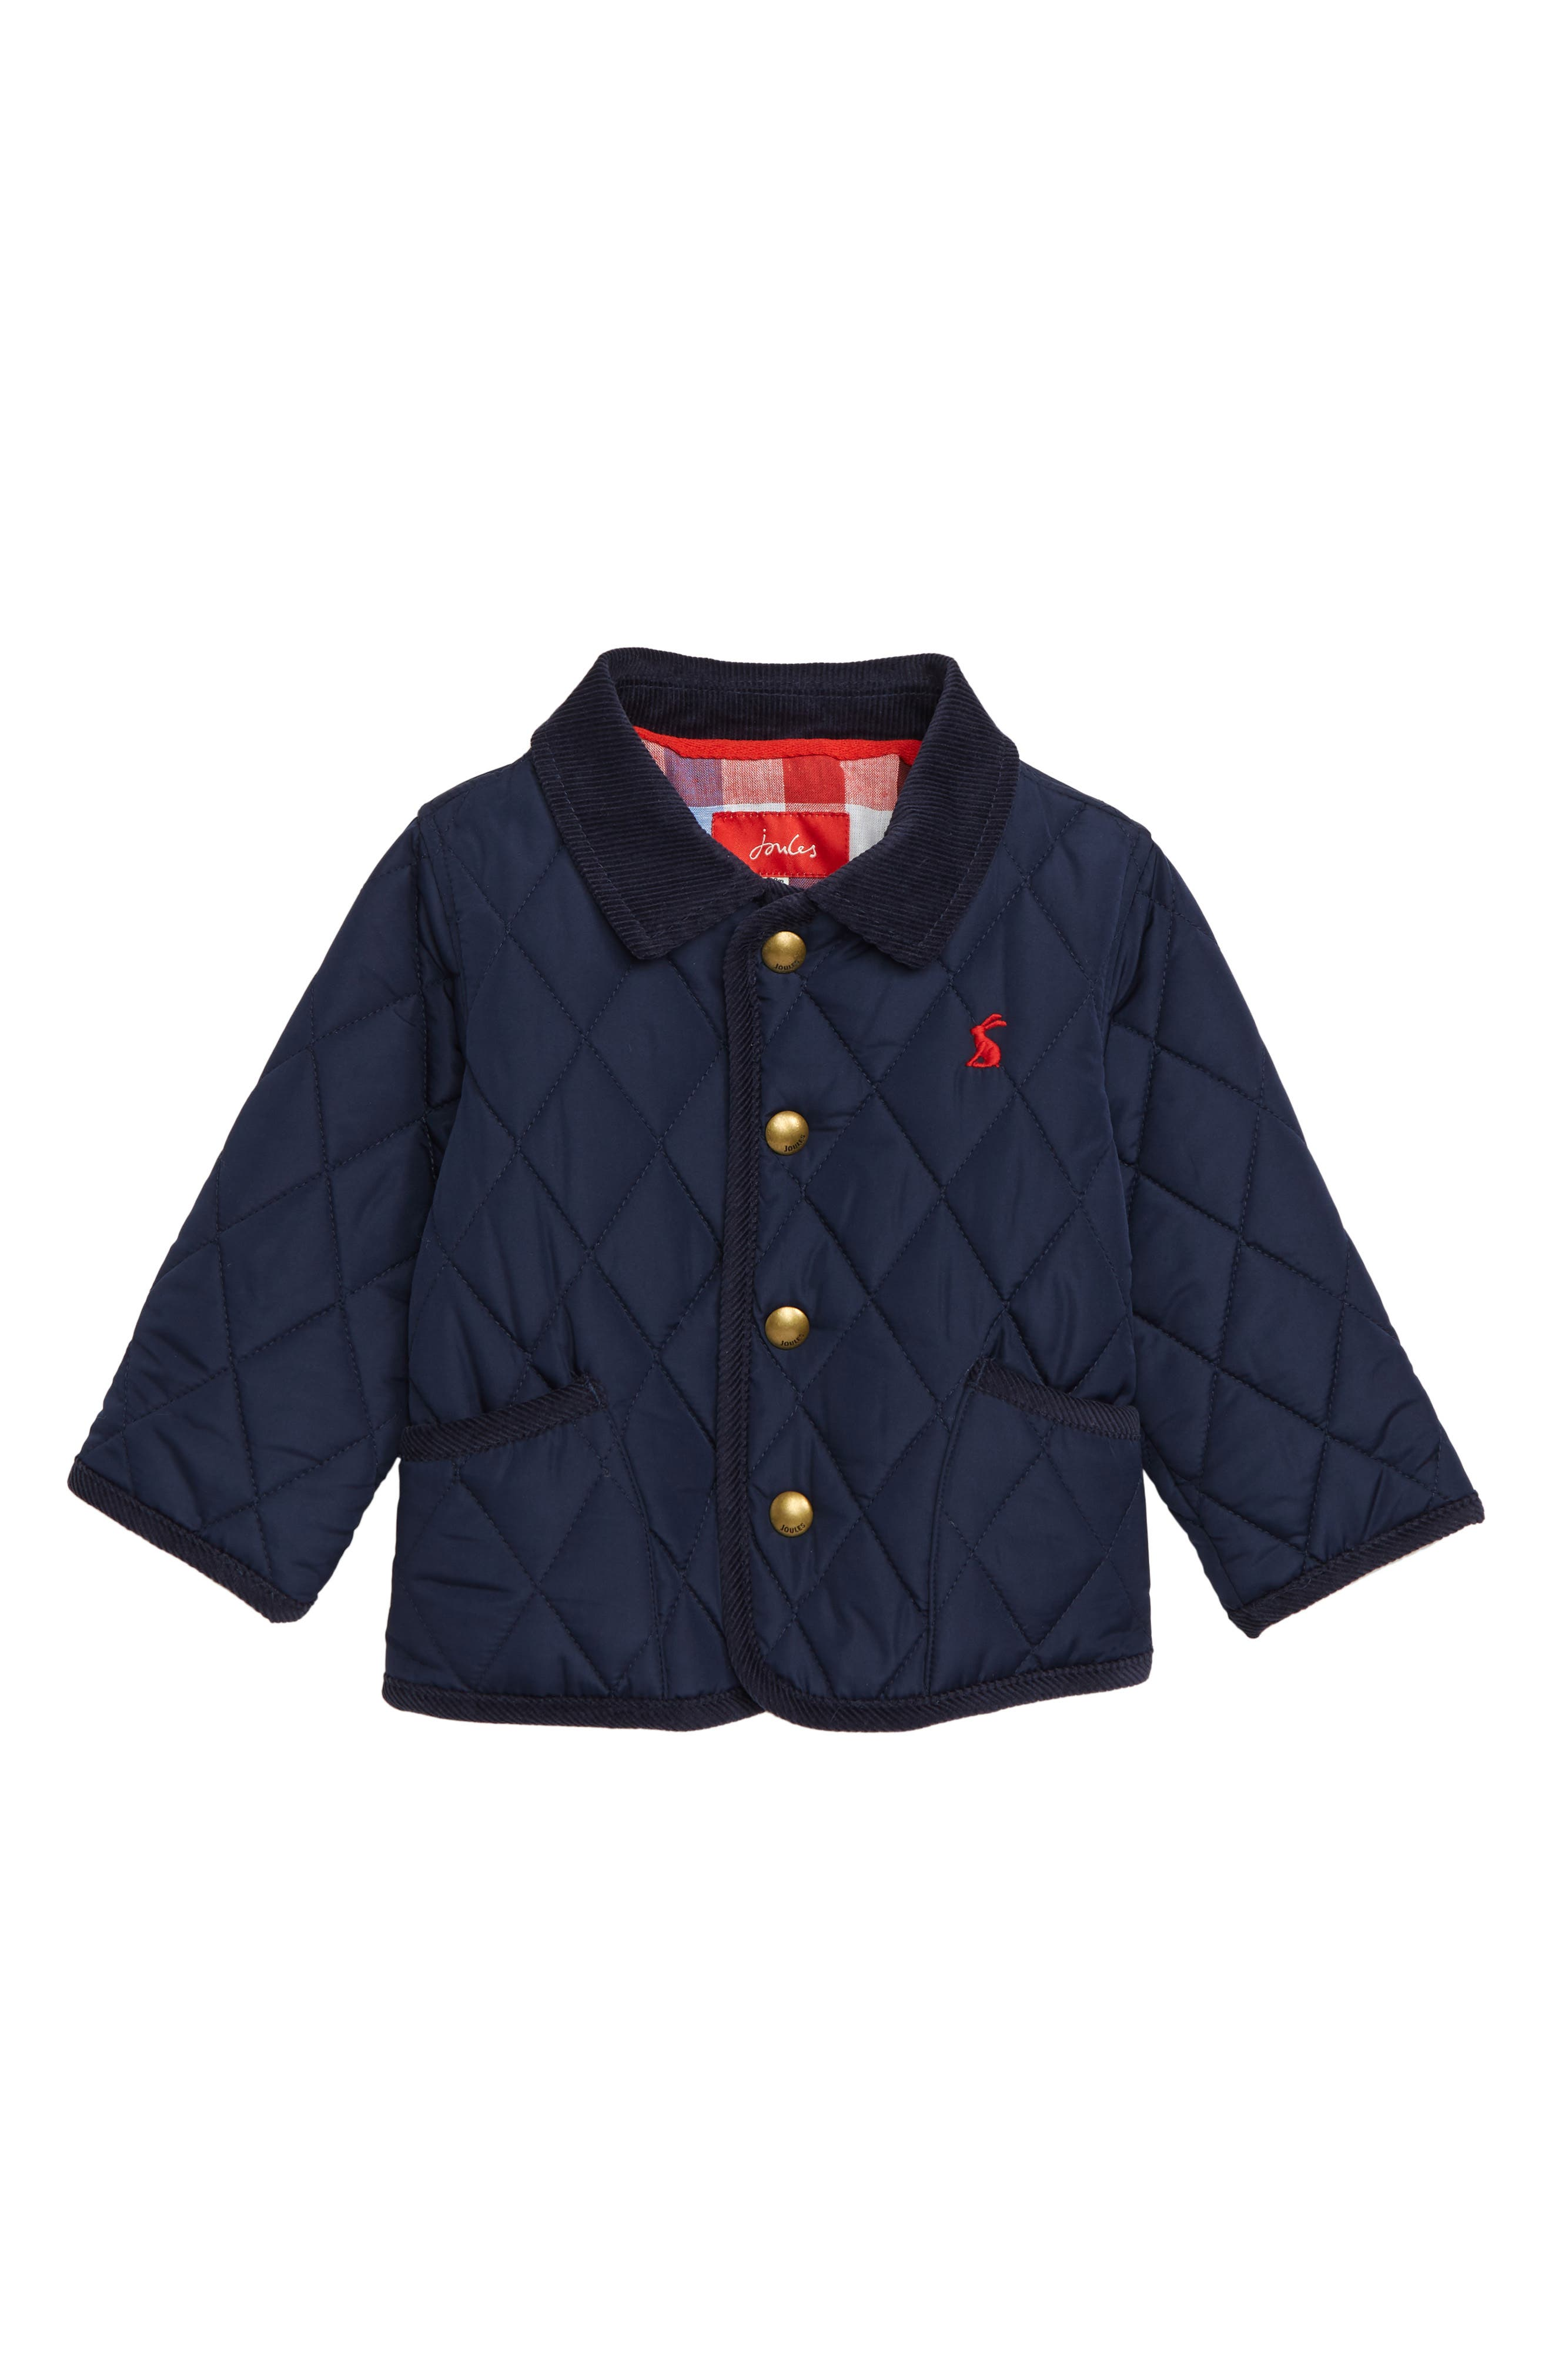 ad9c97155c0dc Infant Boy s Joules Milford Quilted Barn Jacket